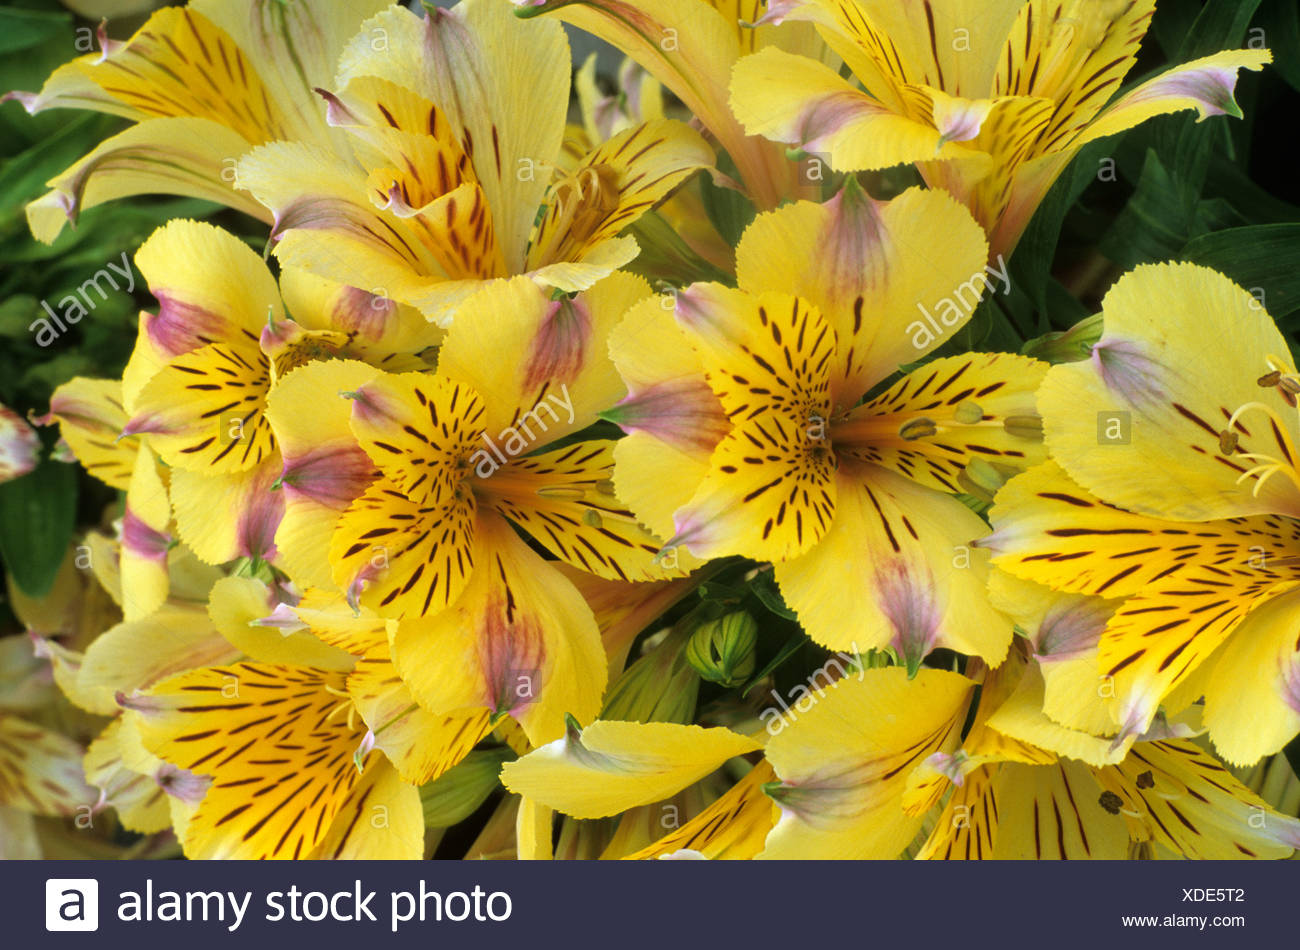 Alstroemeria 'Princess Angela' - Stock Image